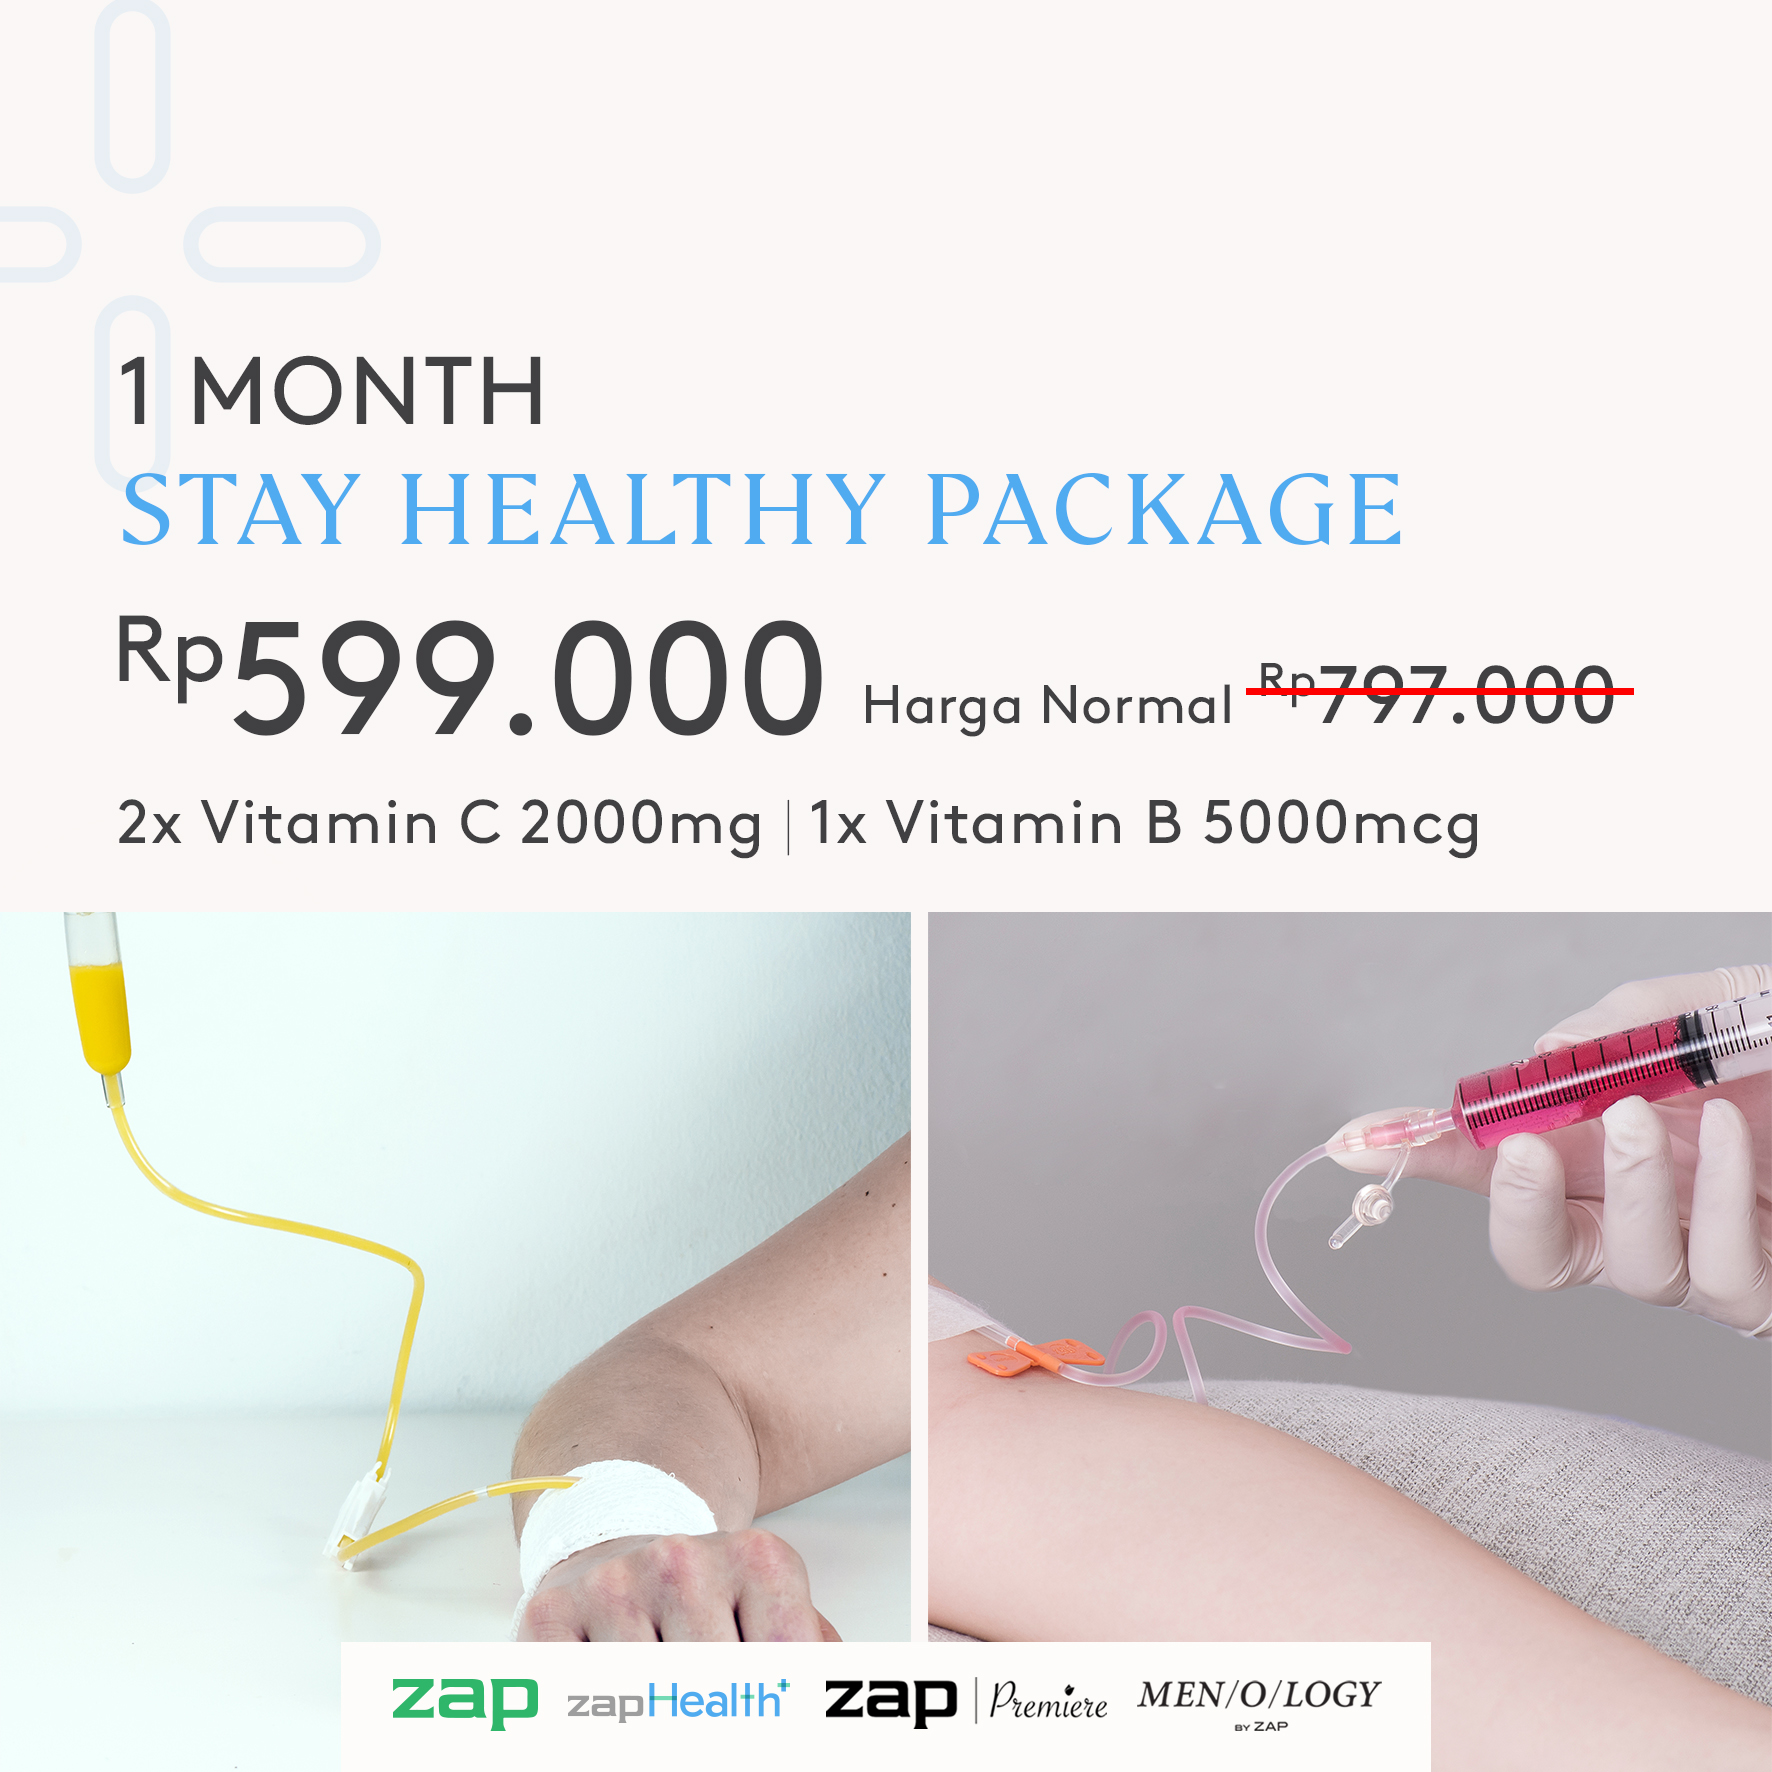 1 Month Stay Healthy Package